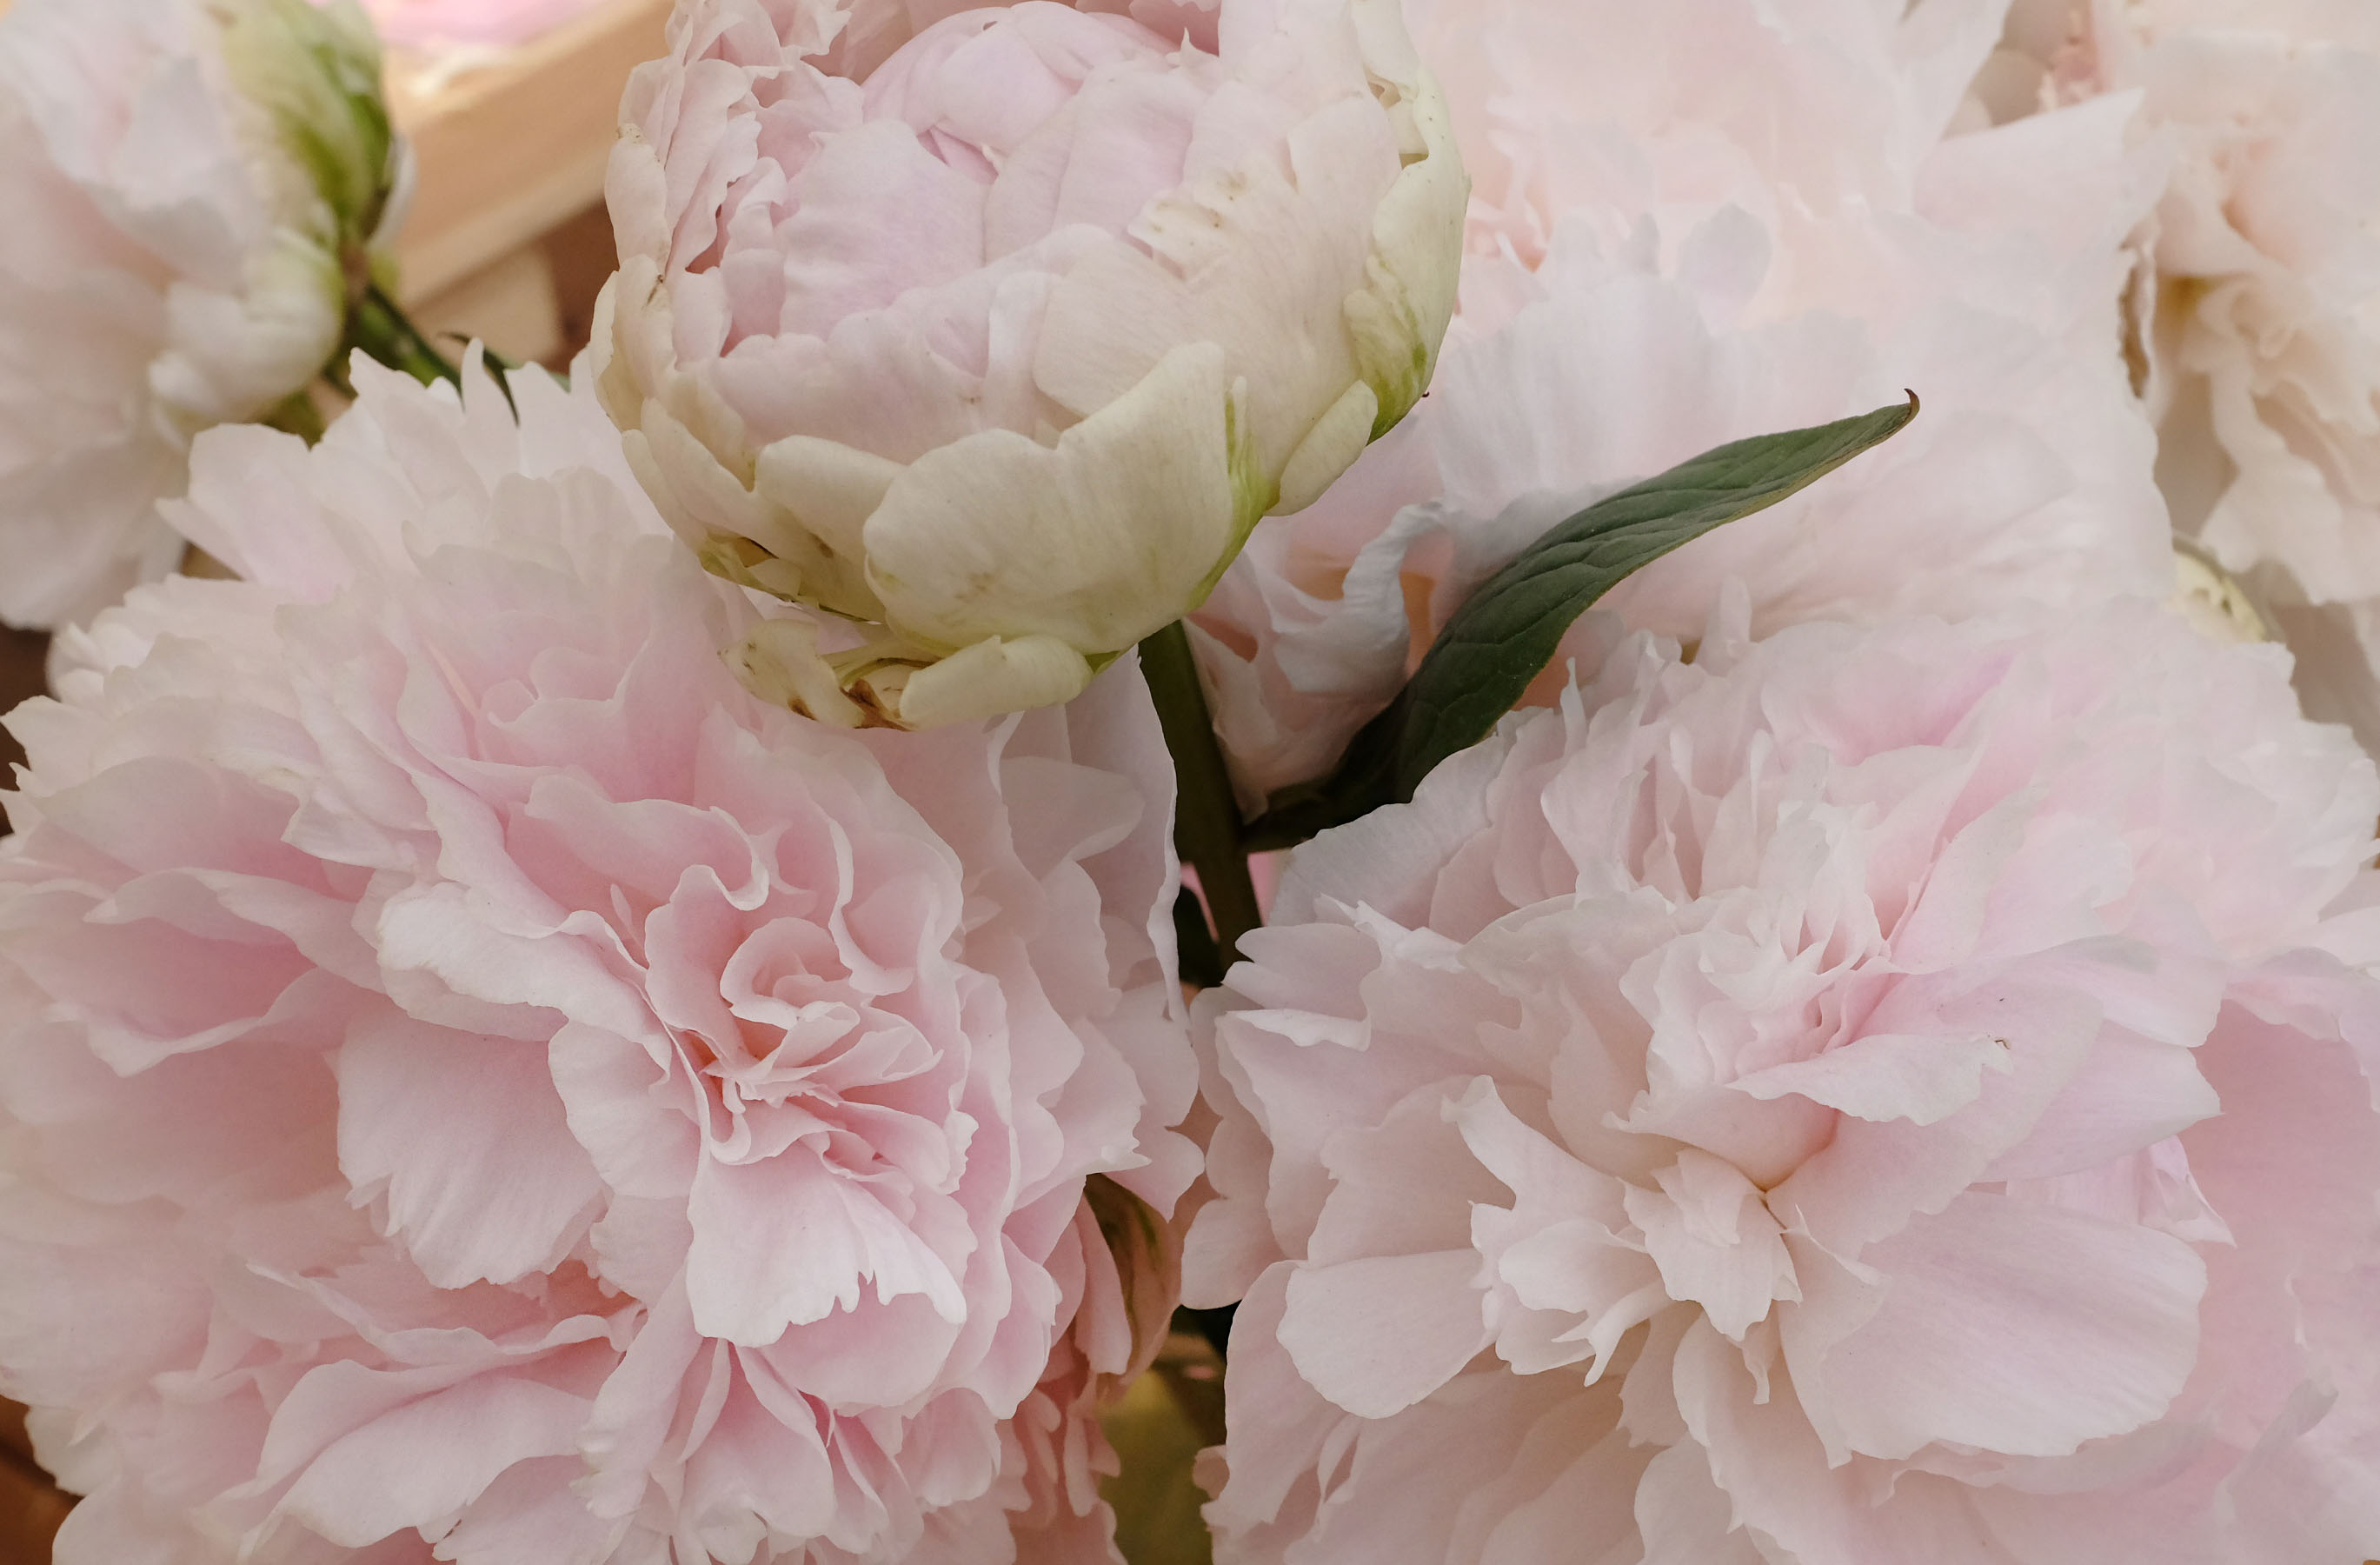 Peonies in Perfumery and Cultivation ~ Raw Materials